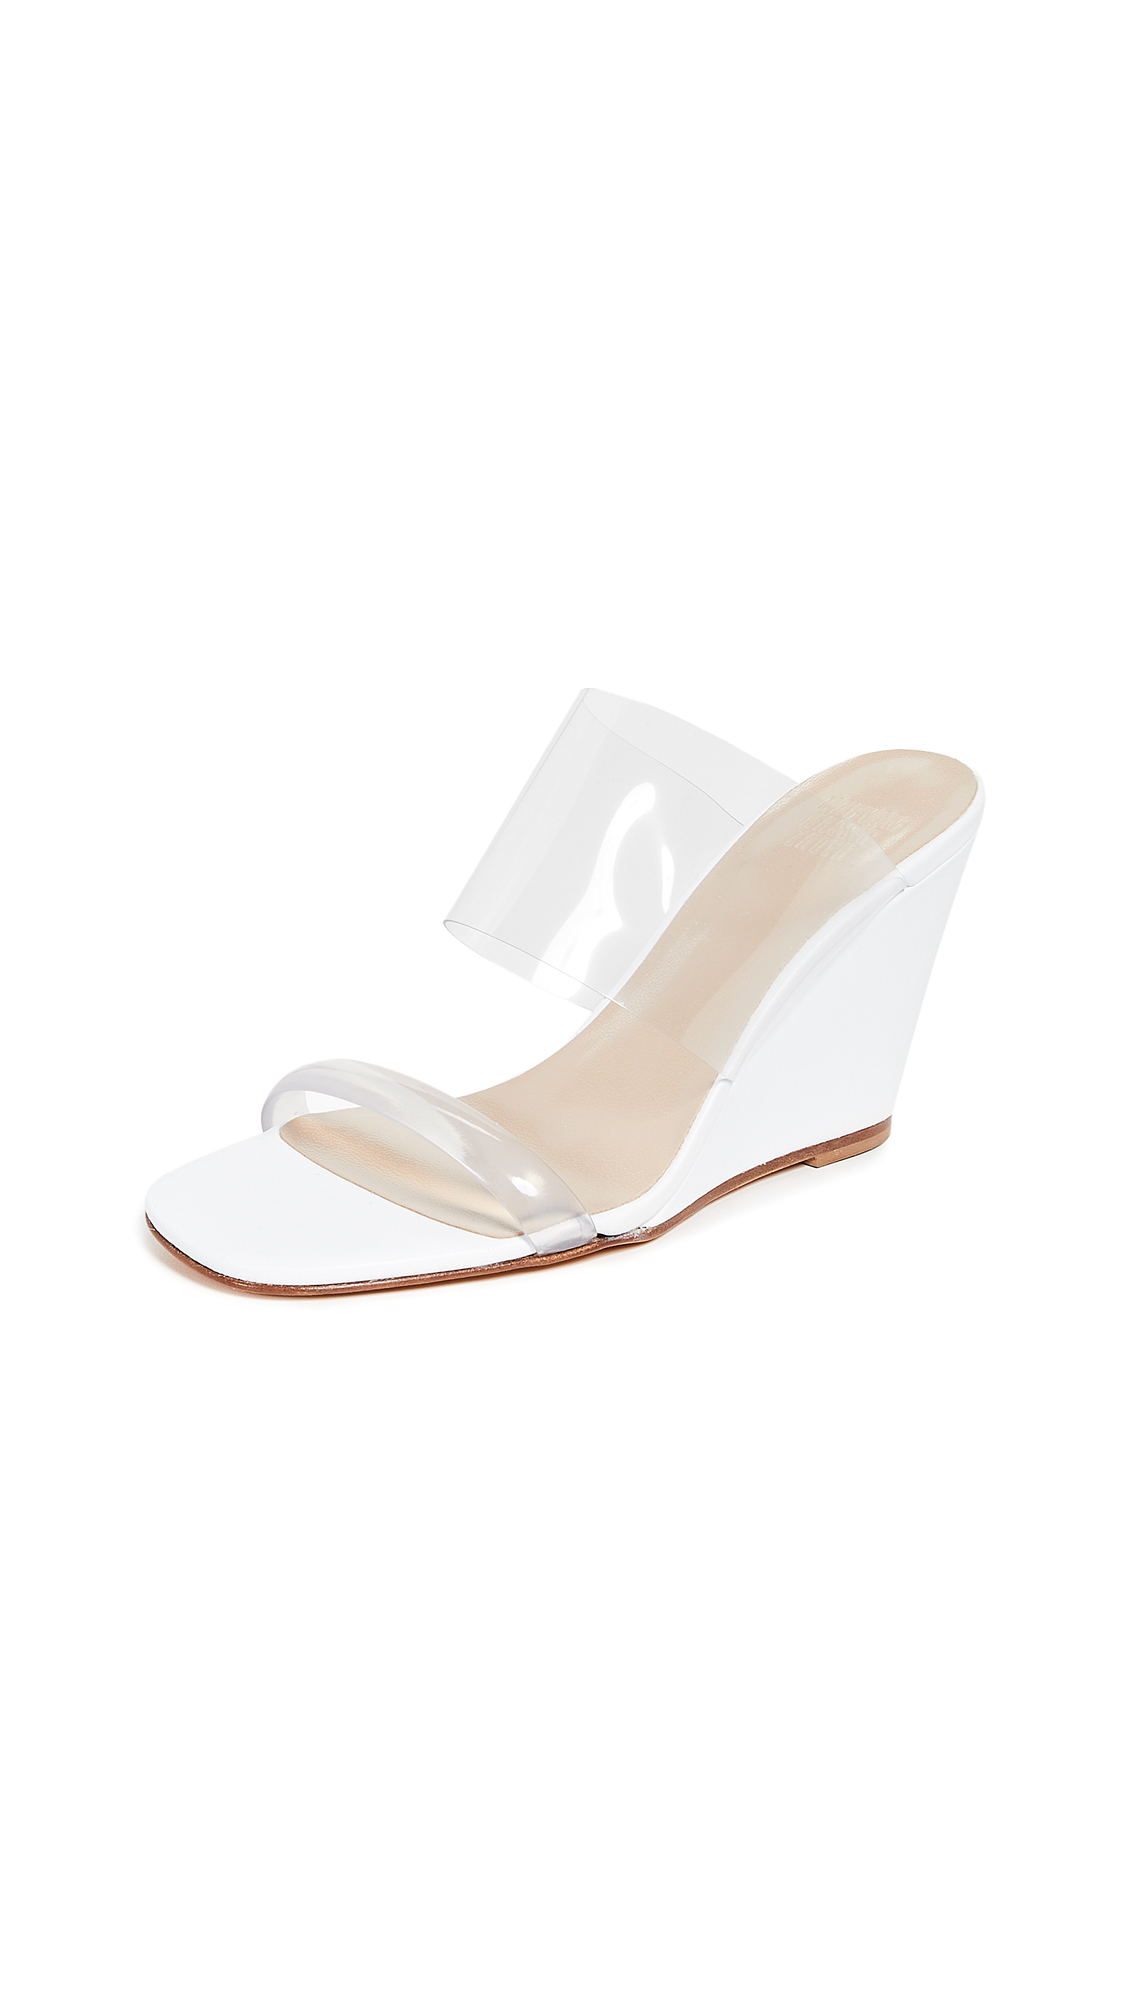 Maryam Nassir Zadeh Olympia Wedges - White